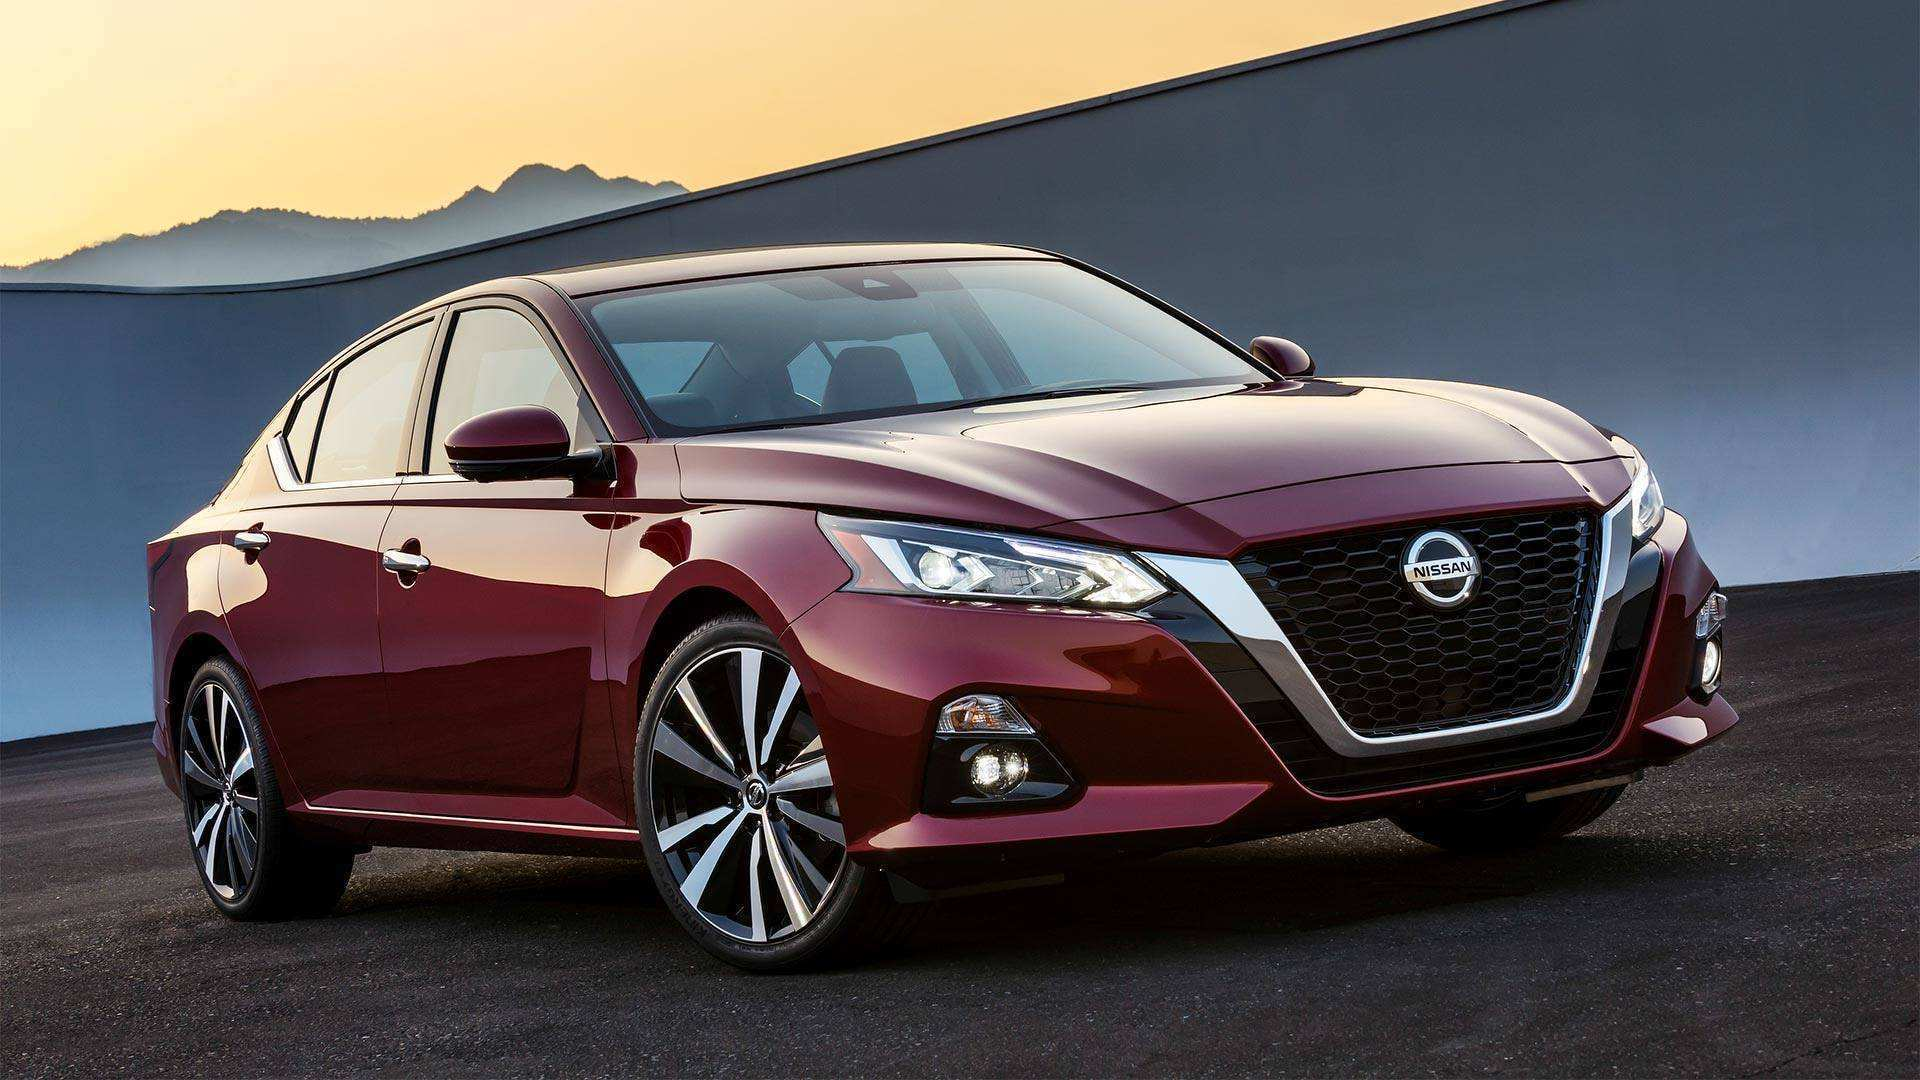 13 All New The 2019 Nissan Altima Interior Redesign And Concept Wallpaper with The 2019 Nissan Altima Interior Redesign And Concept